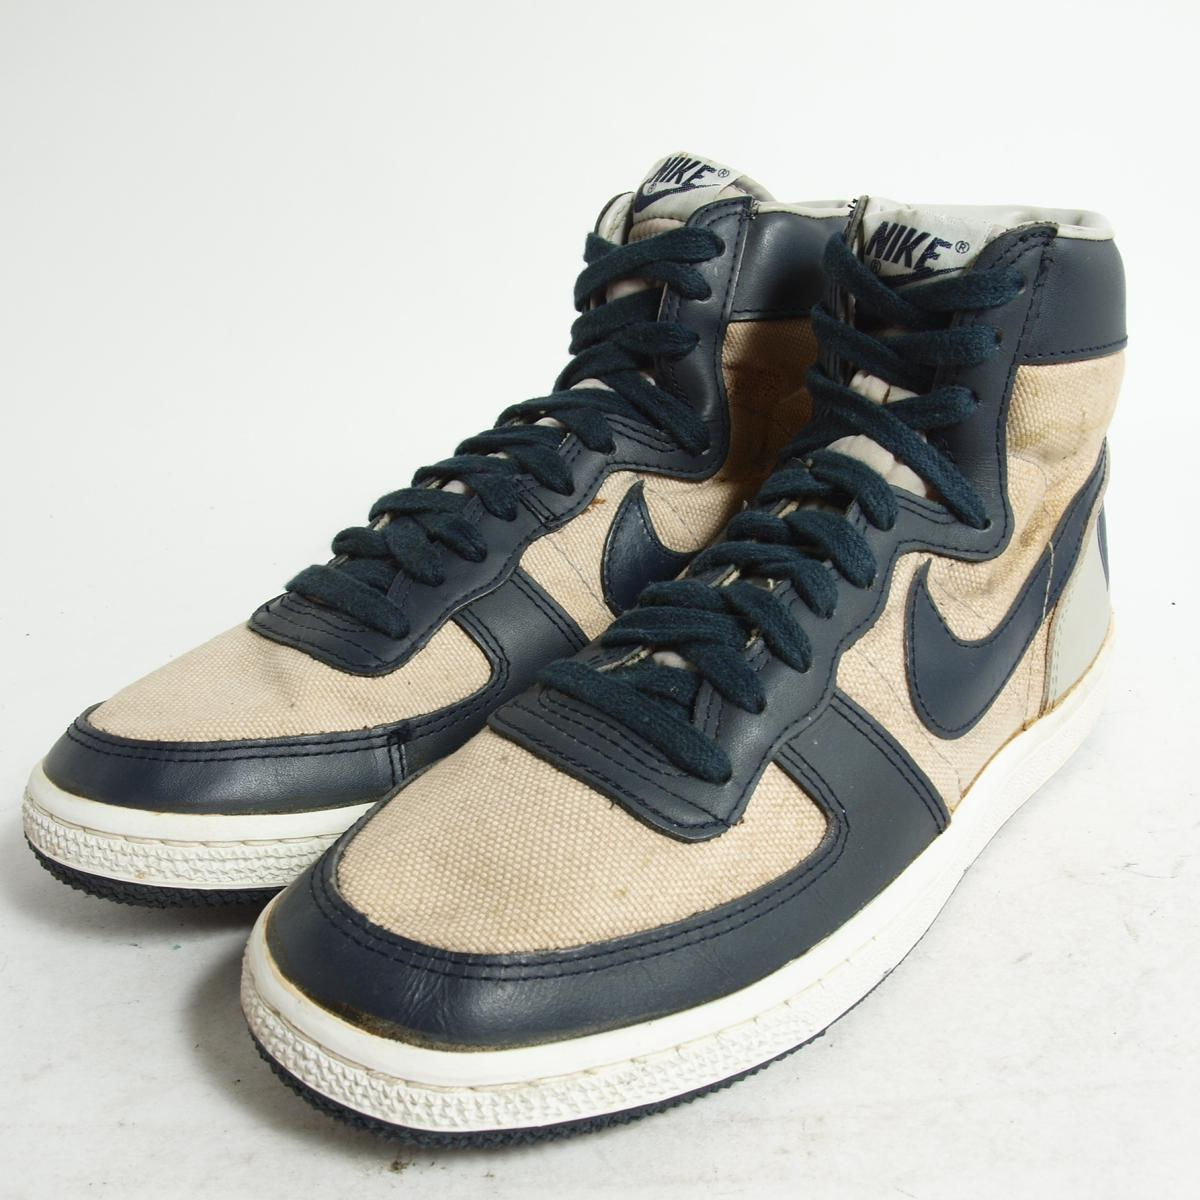 huge discount 280f5 274d9 Sneakers US8 .5 mens 26.5cm vintage NIKE bok8091 in the 80s made in Nike  TERMINATOR HIGH terminator canvas Korea